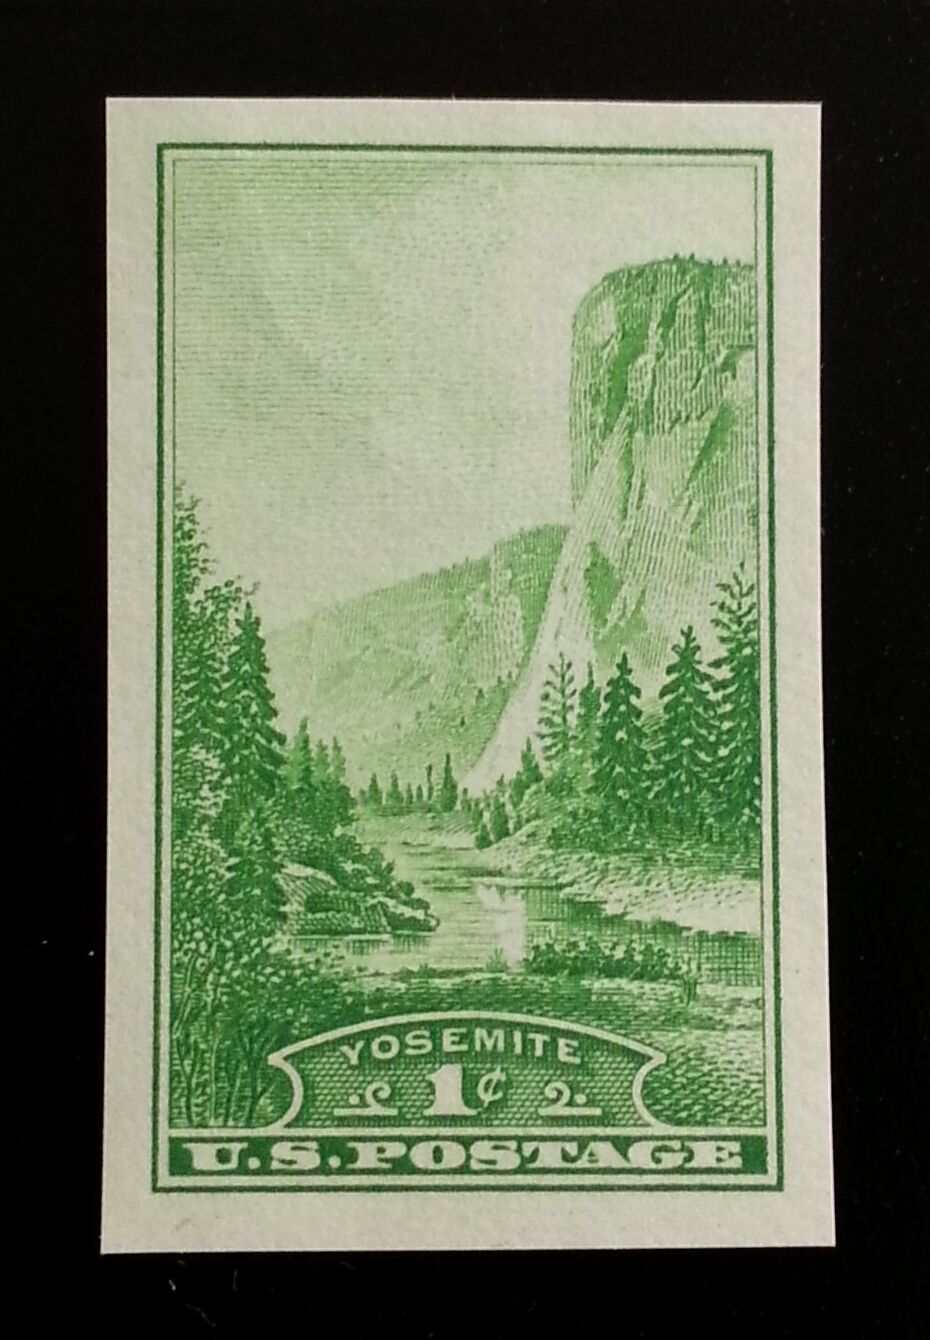 1935 1c Yosemite, Imperforate Single Stamp issued witho